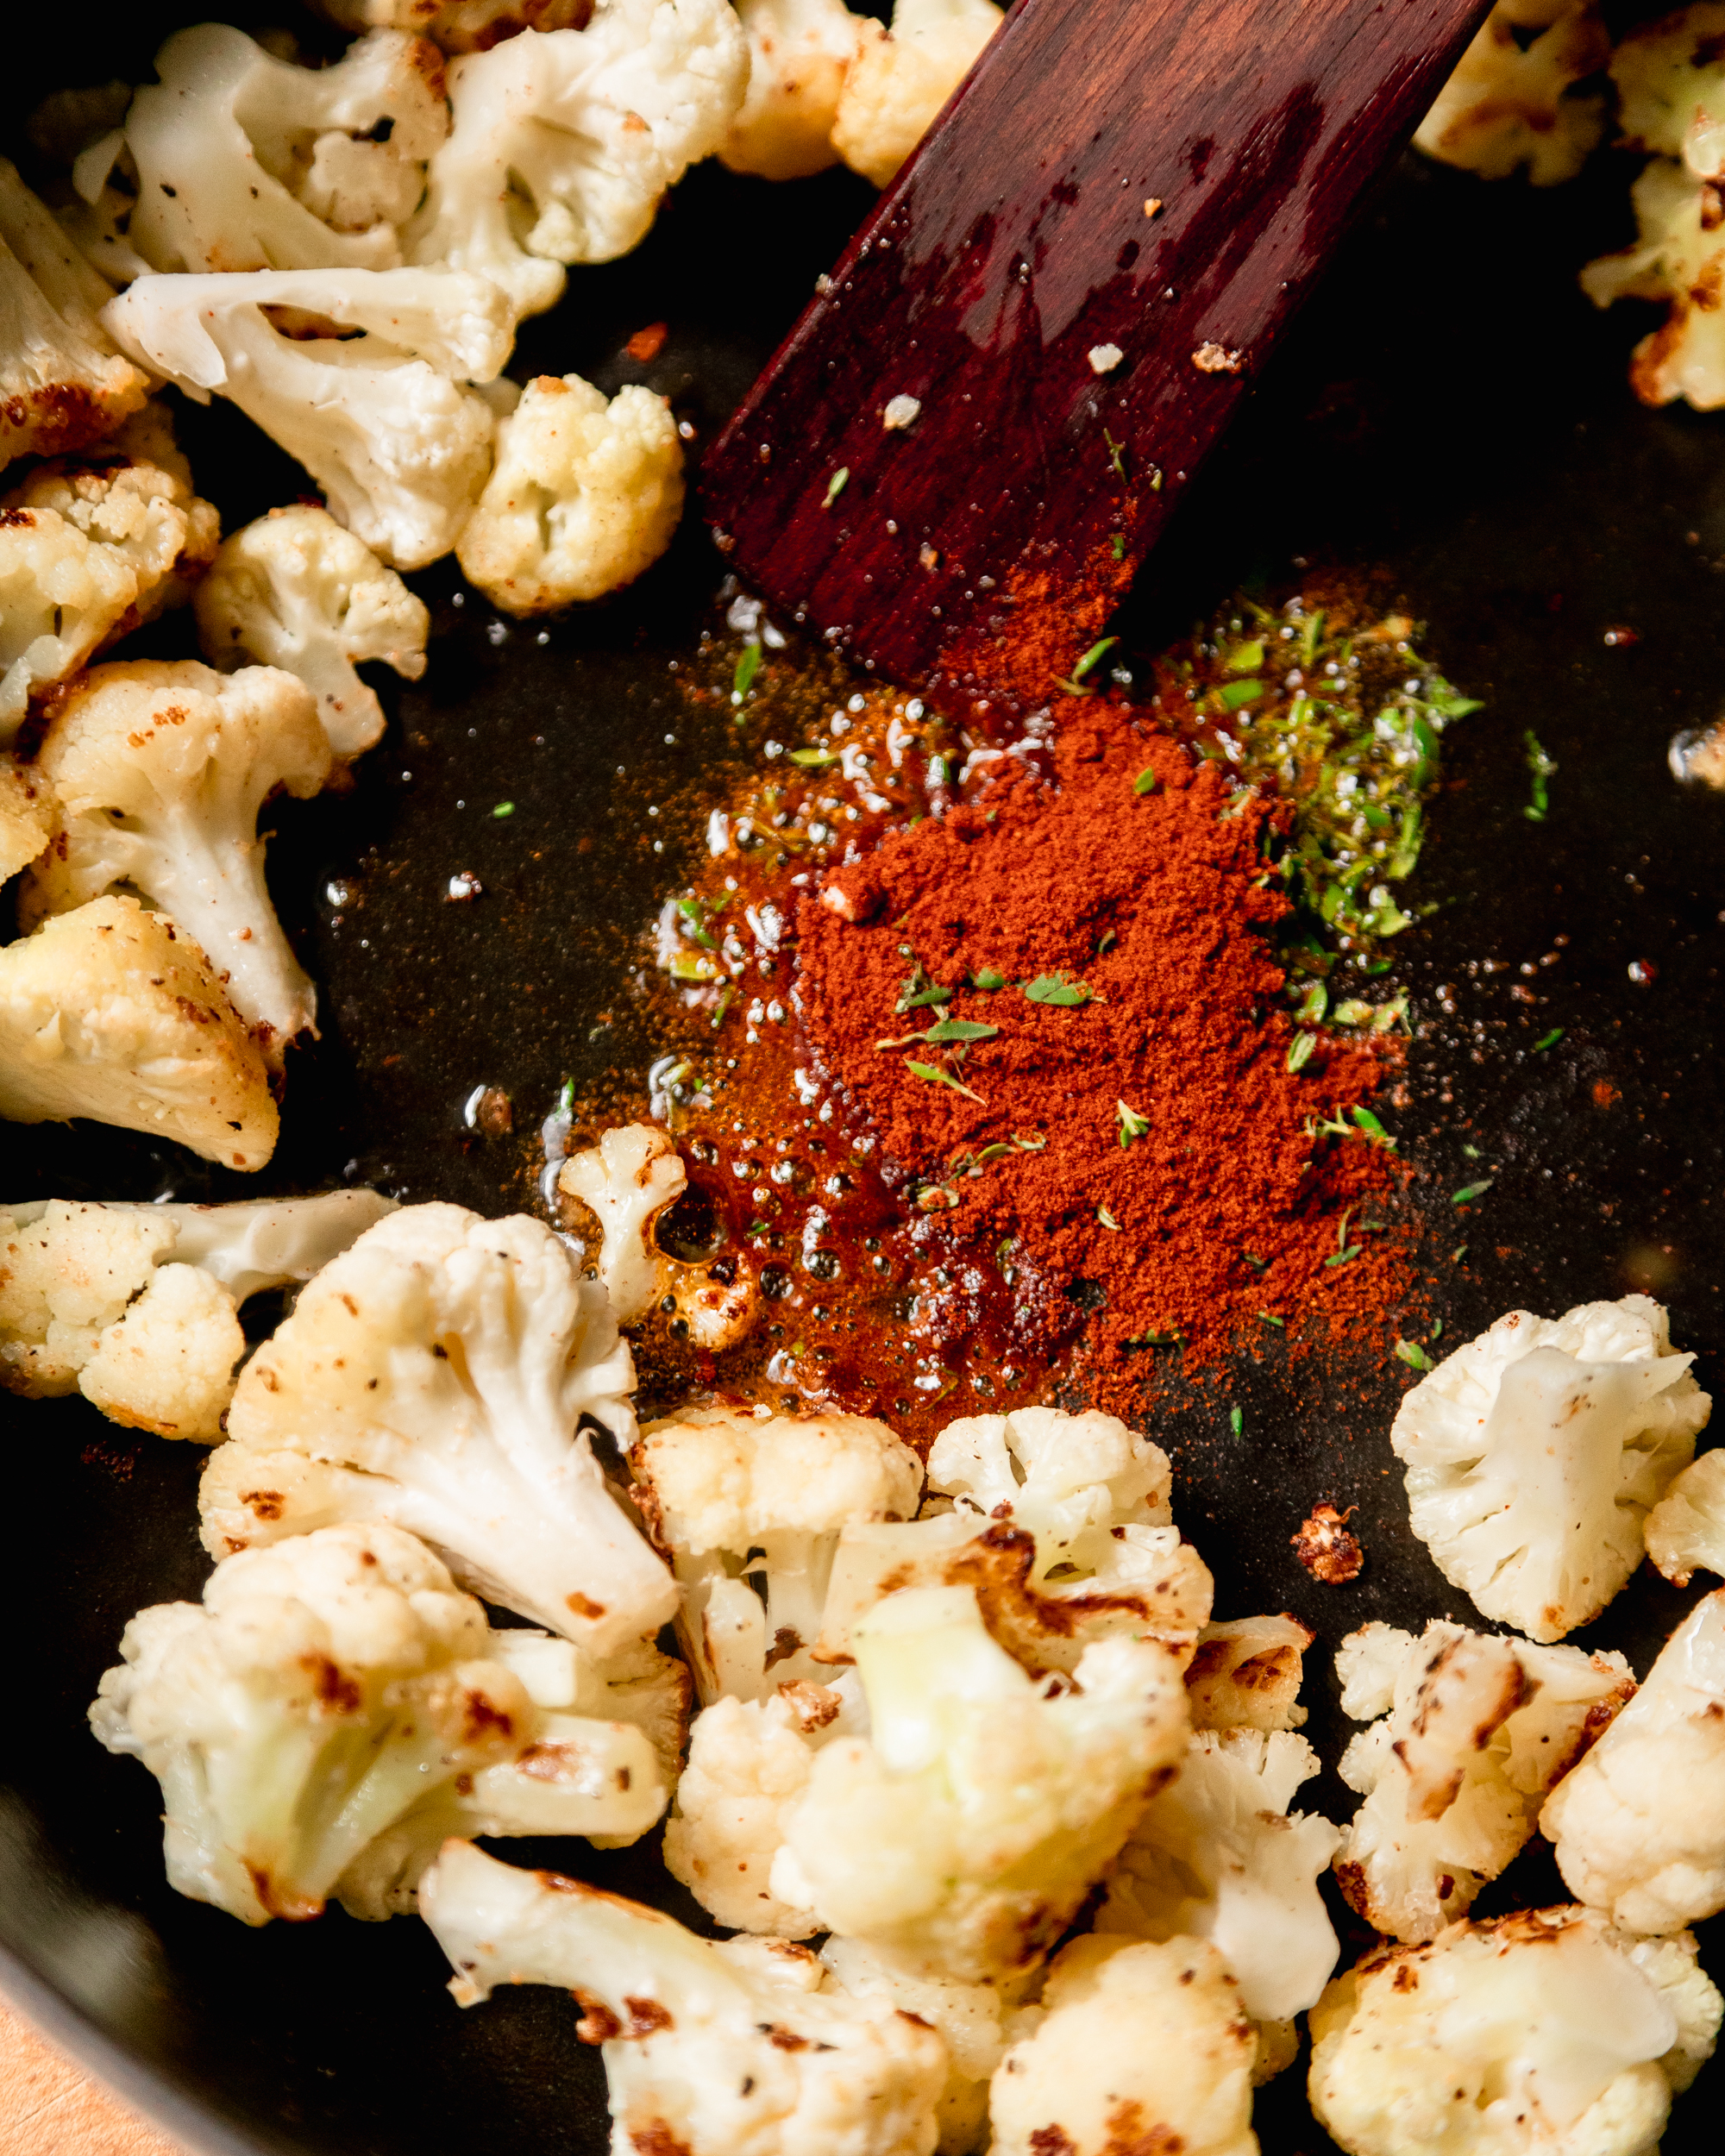 An up close shot of smoked paprika and thyme sizzling in hot oil, surrounded by cauliflower.